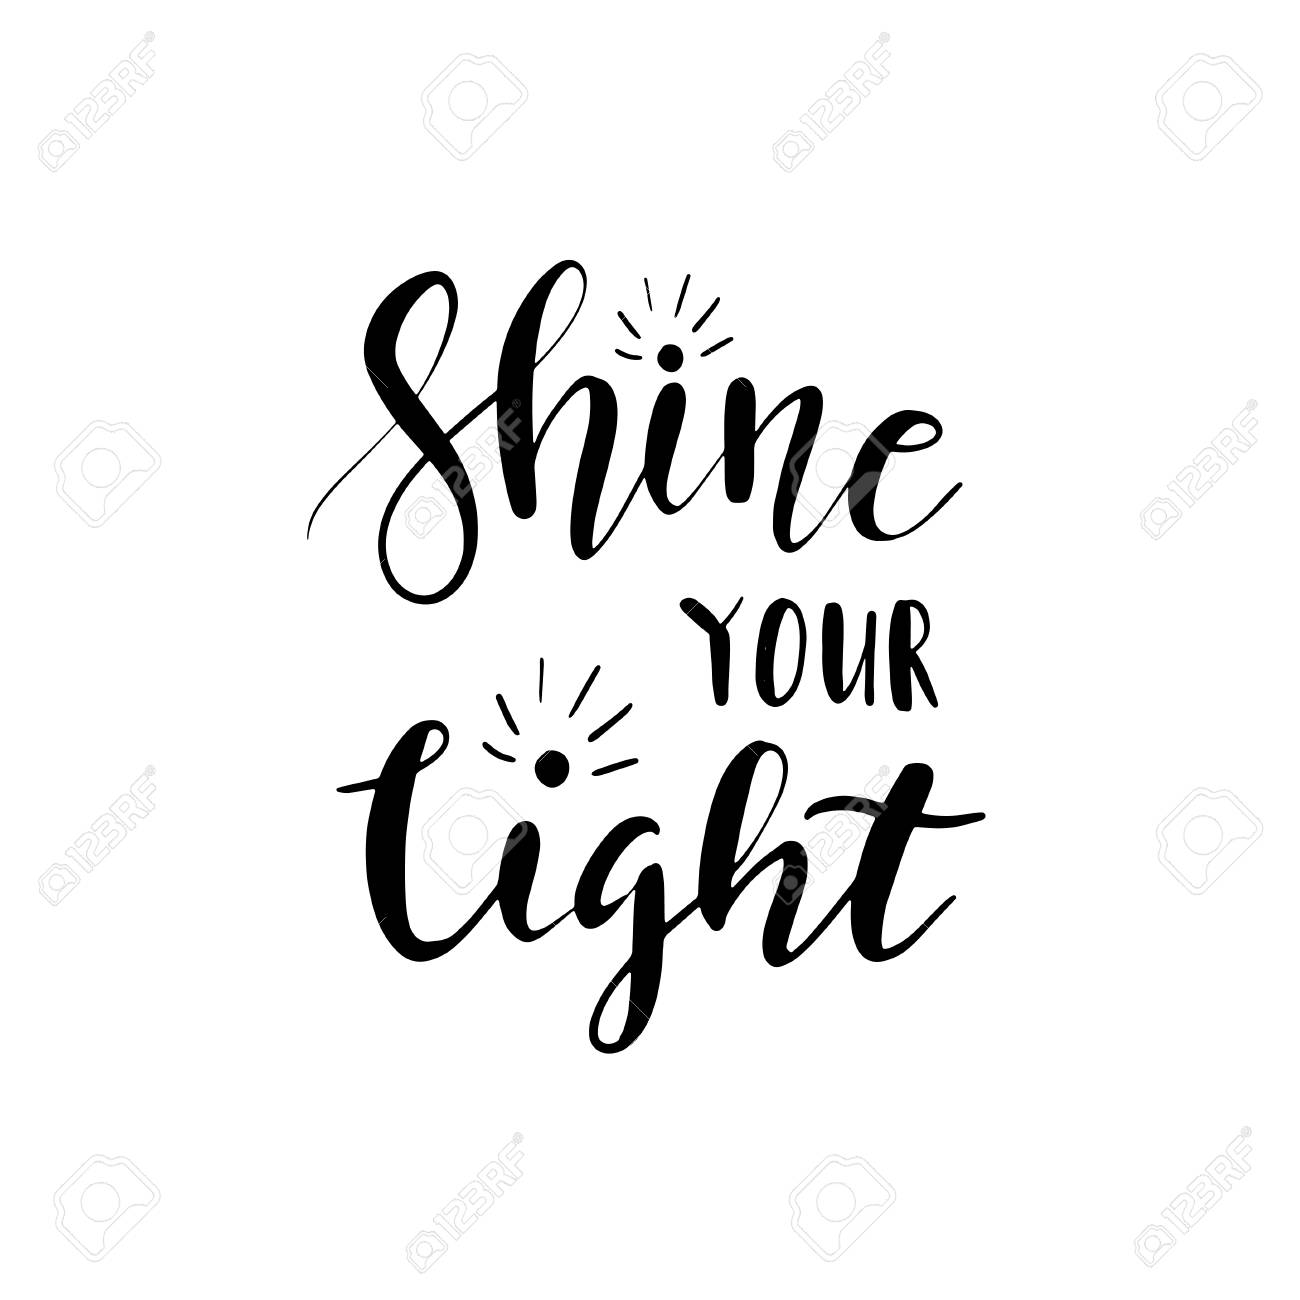 Shine Your Light Black And White Hand Written Lettering Positive